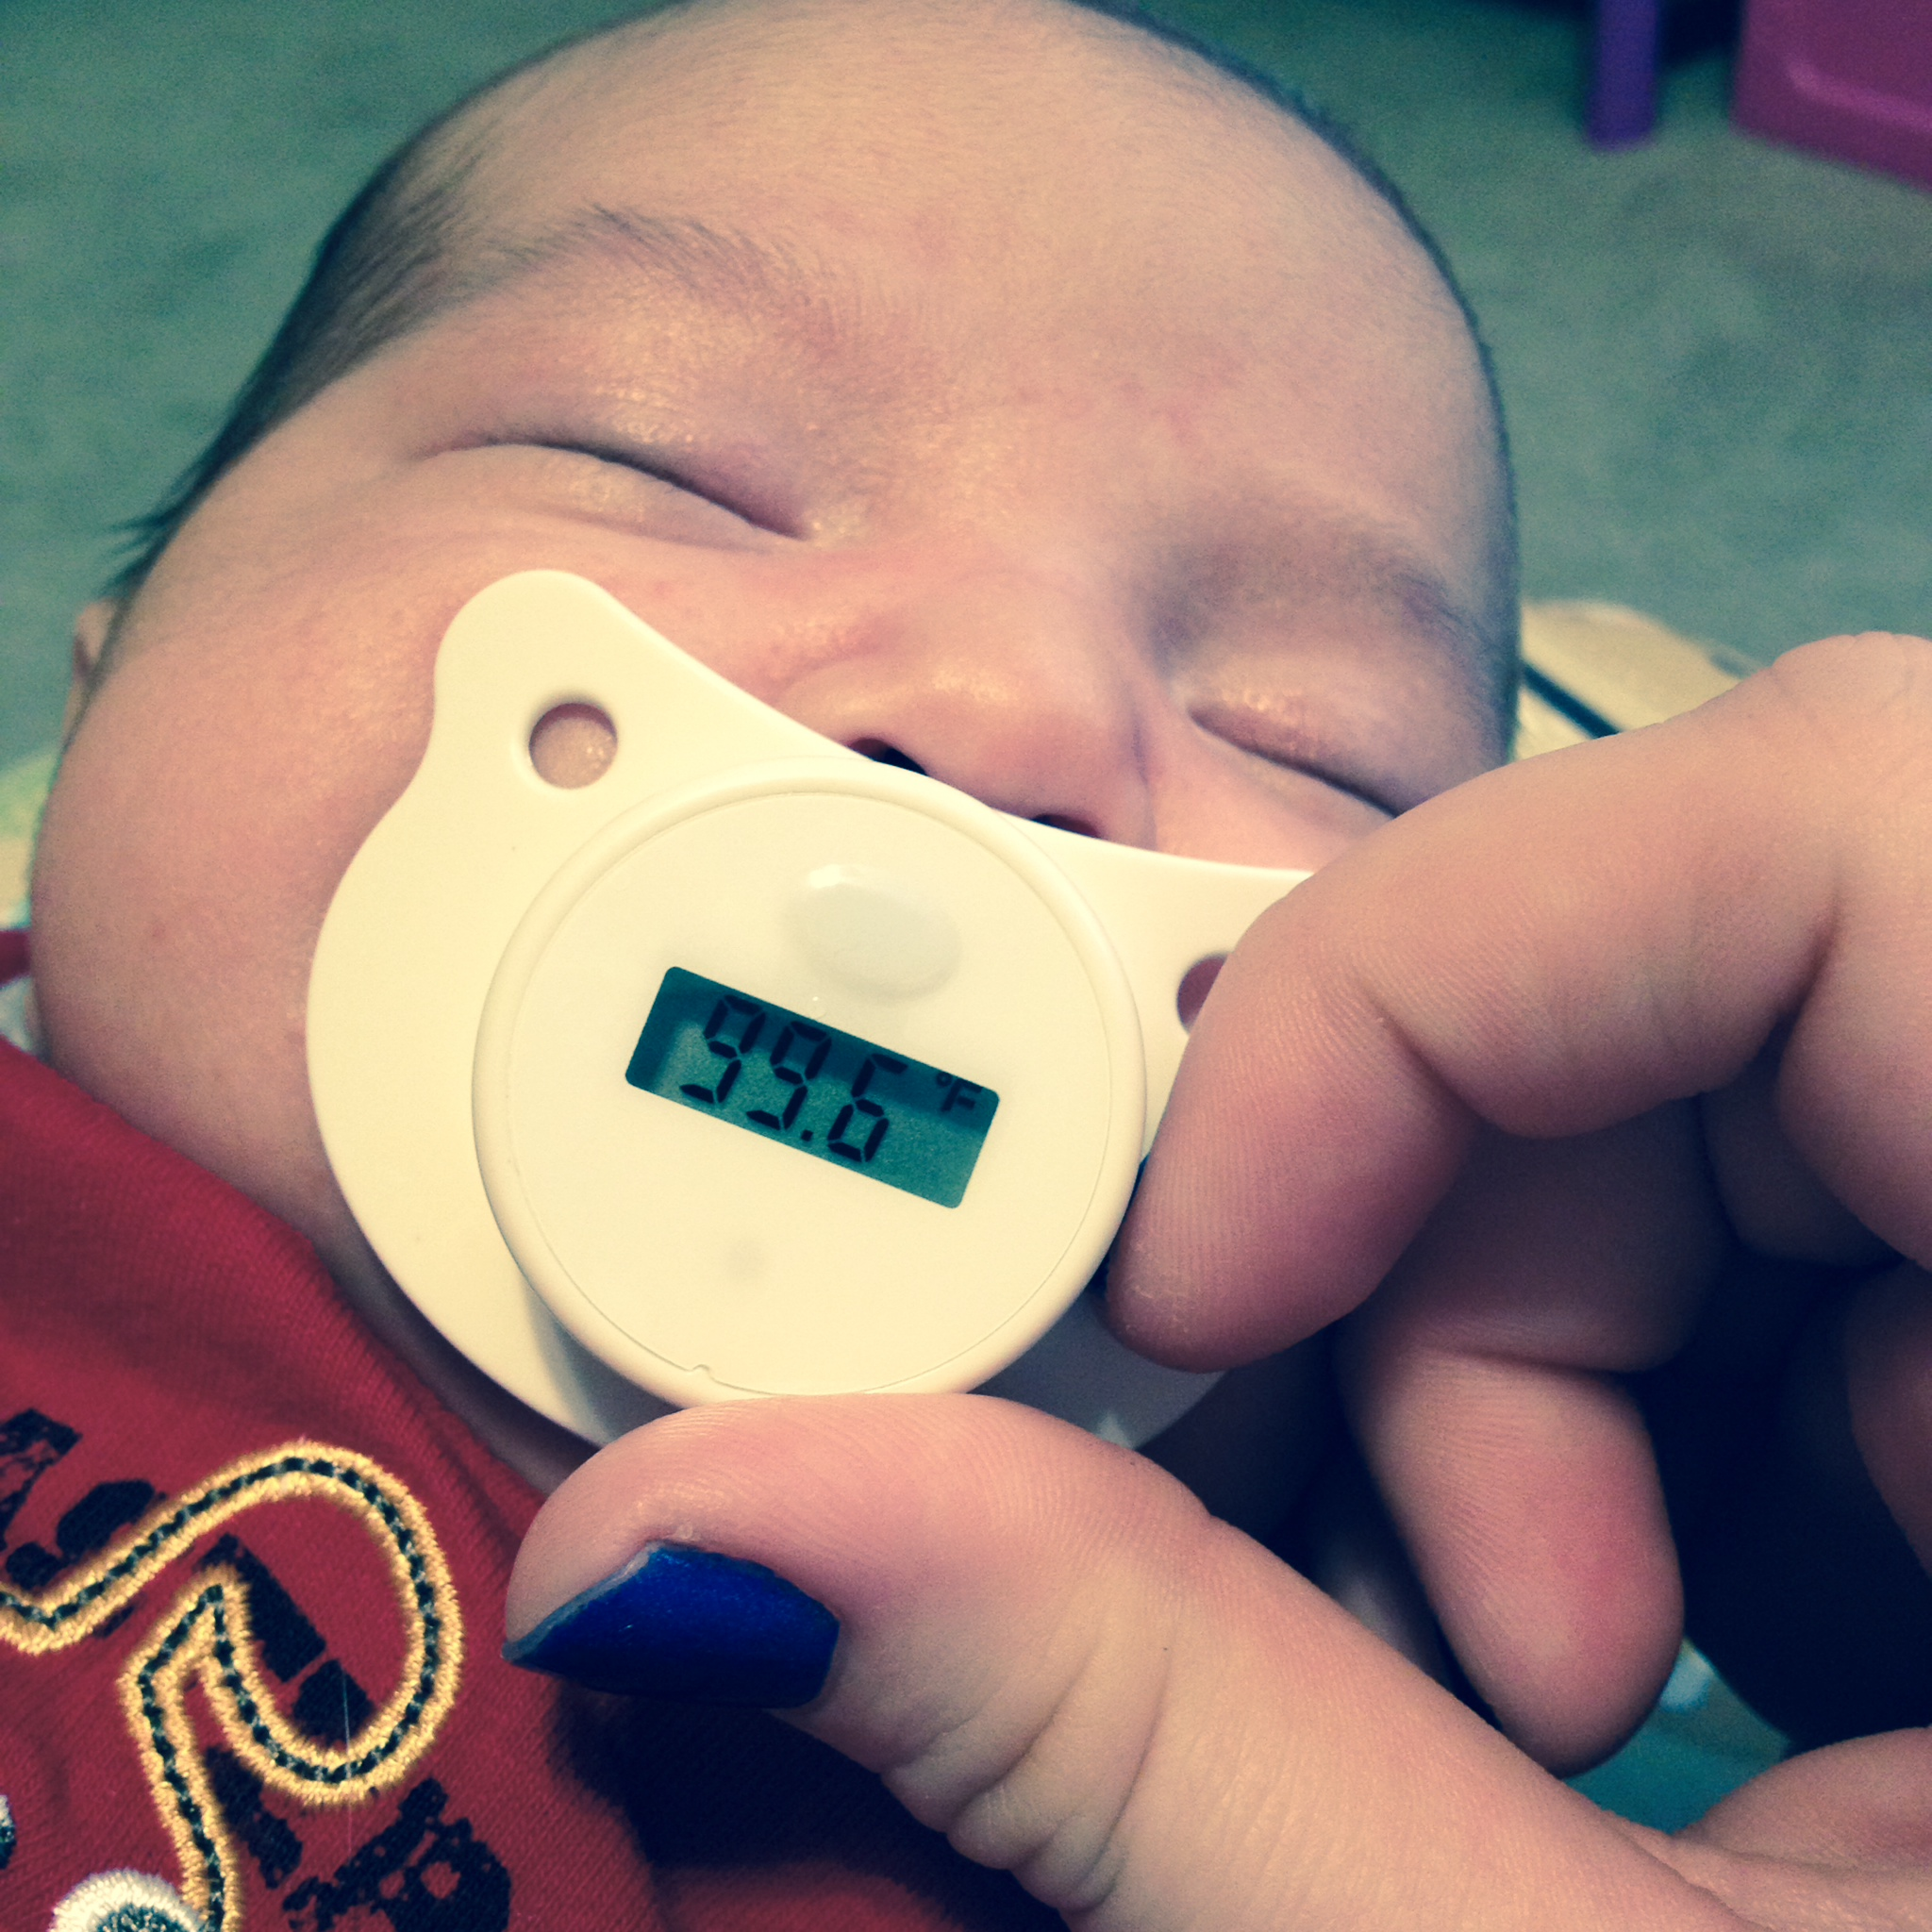 Carex Digital Pacifier Thermometer